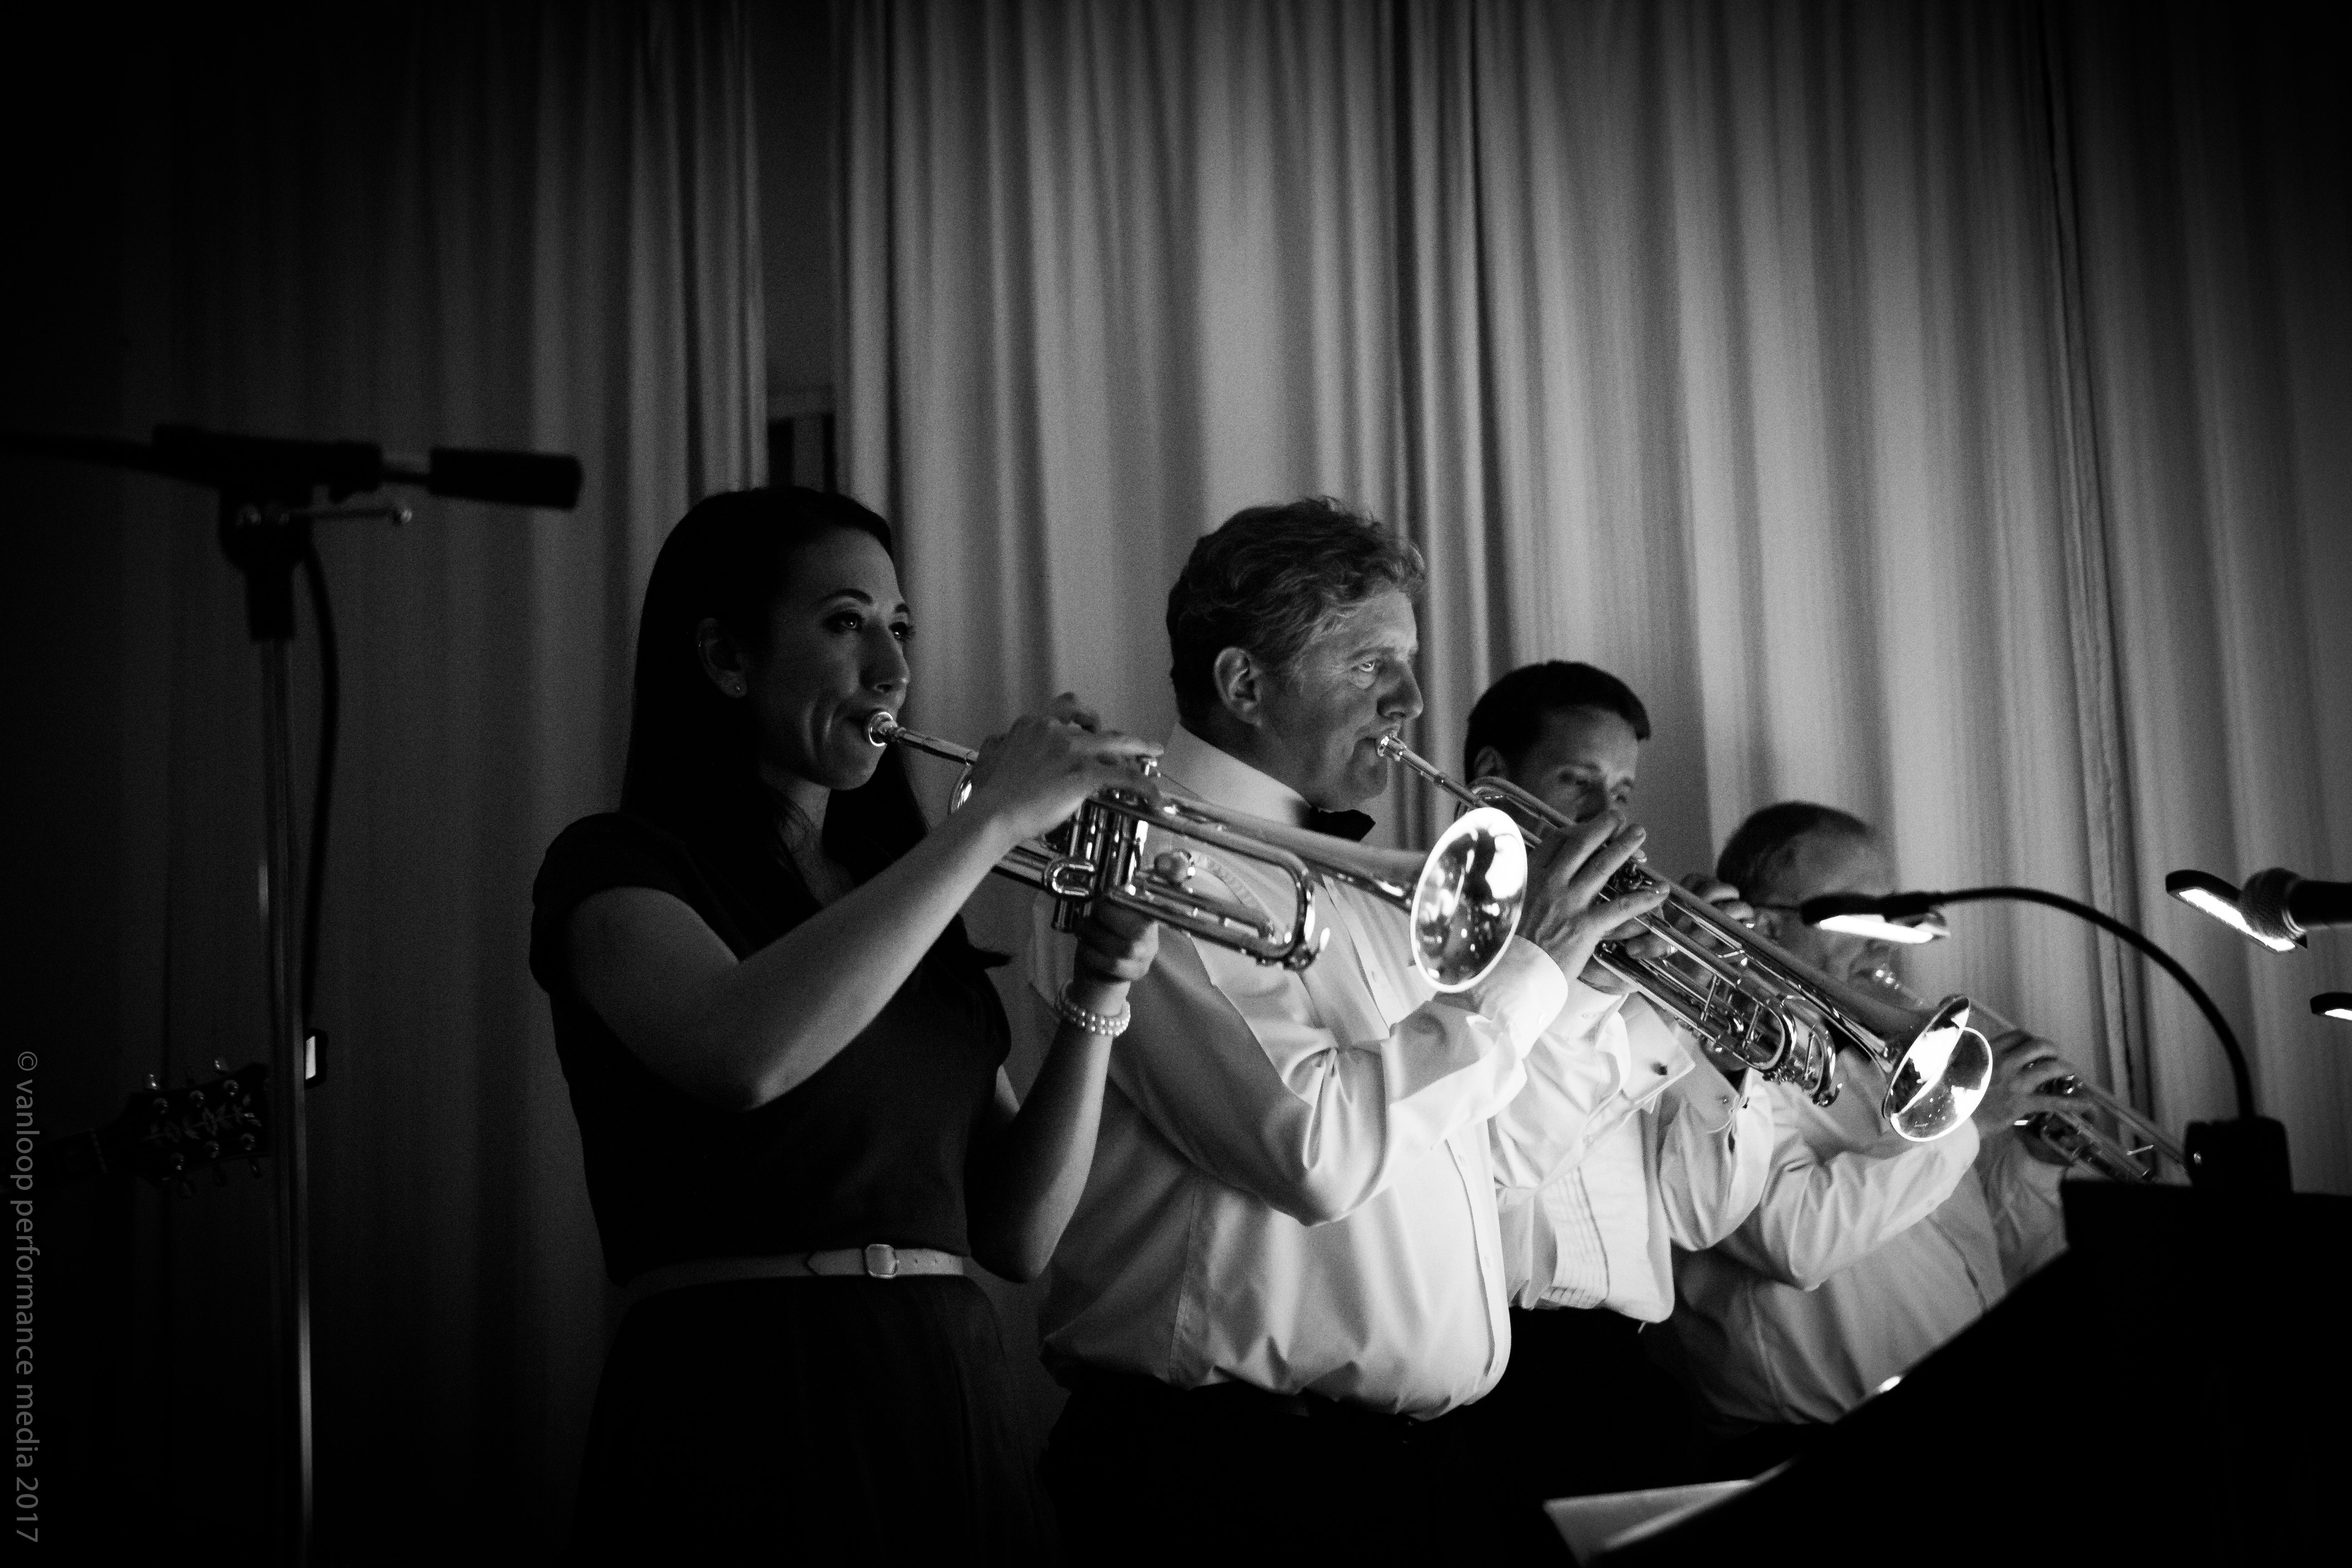 Live event - Brass band